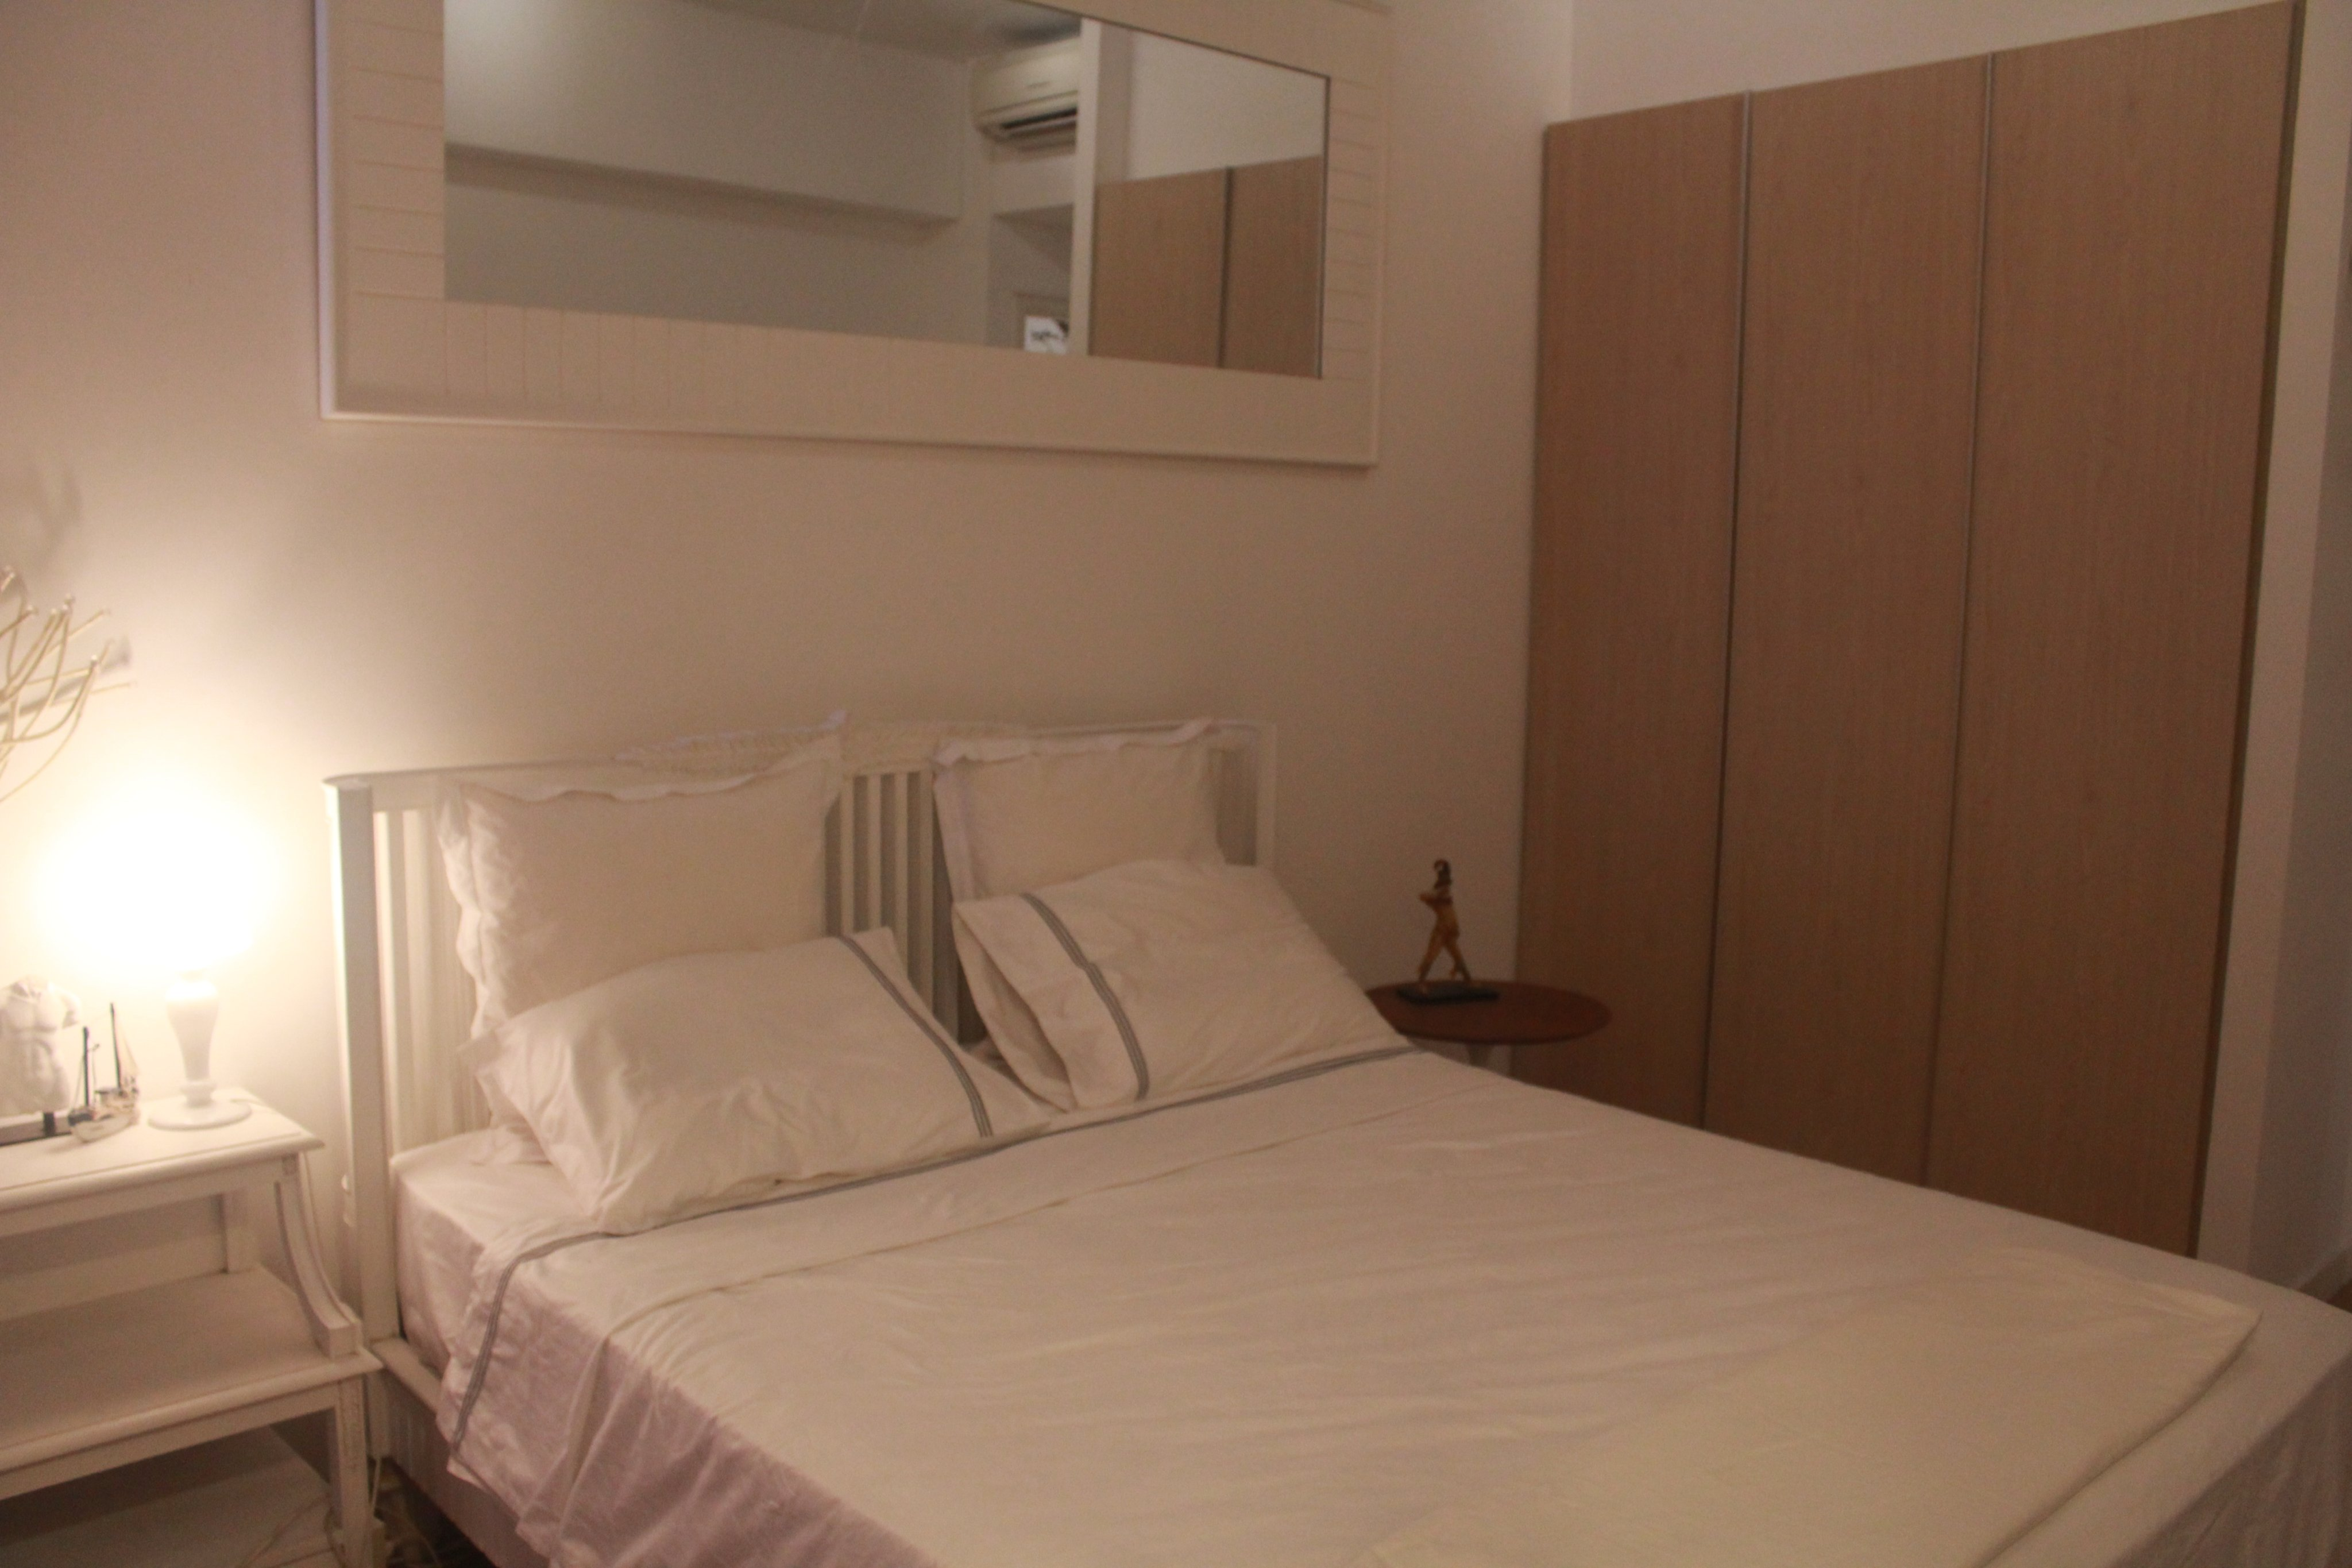 saigon pearl apartment for rent in binh thanh district hcmc D201237(14)